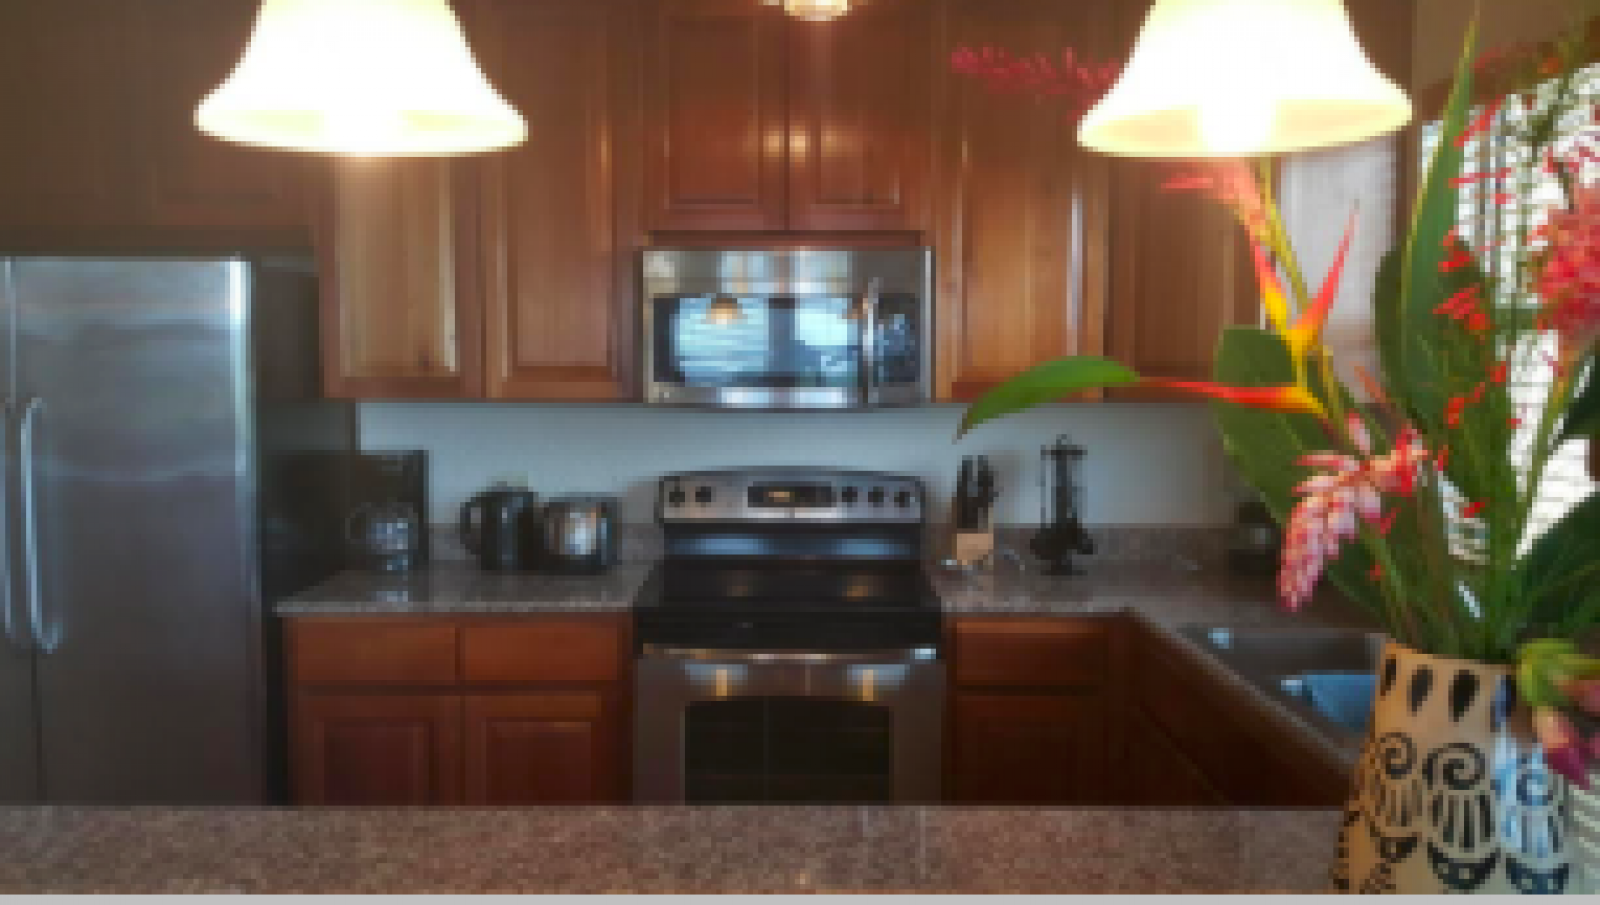 Fully equipped kitchen with high-end fixtures and fittings, appliances and granite countertops.